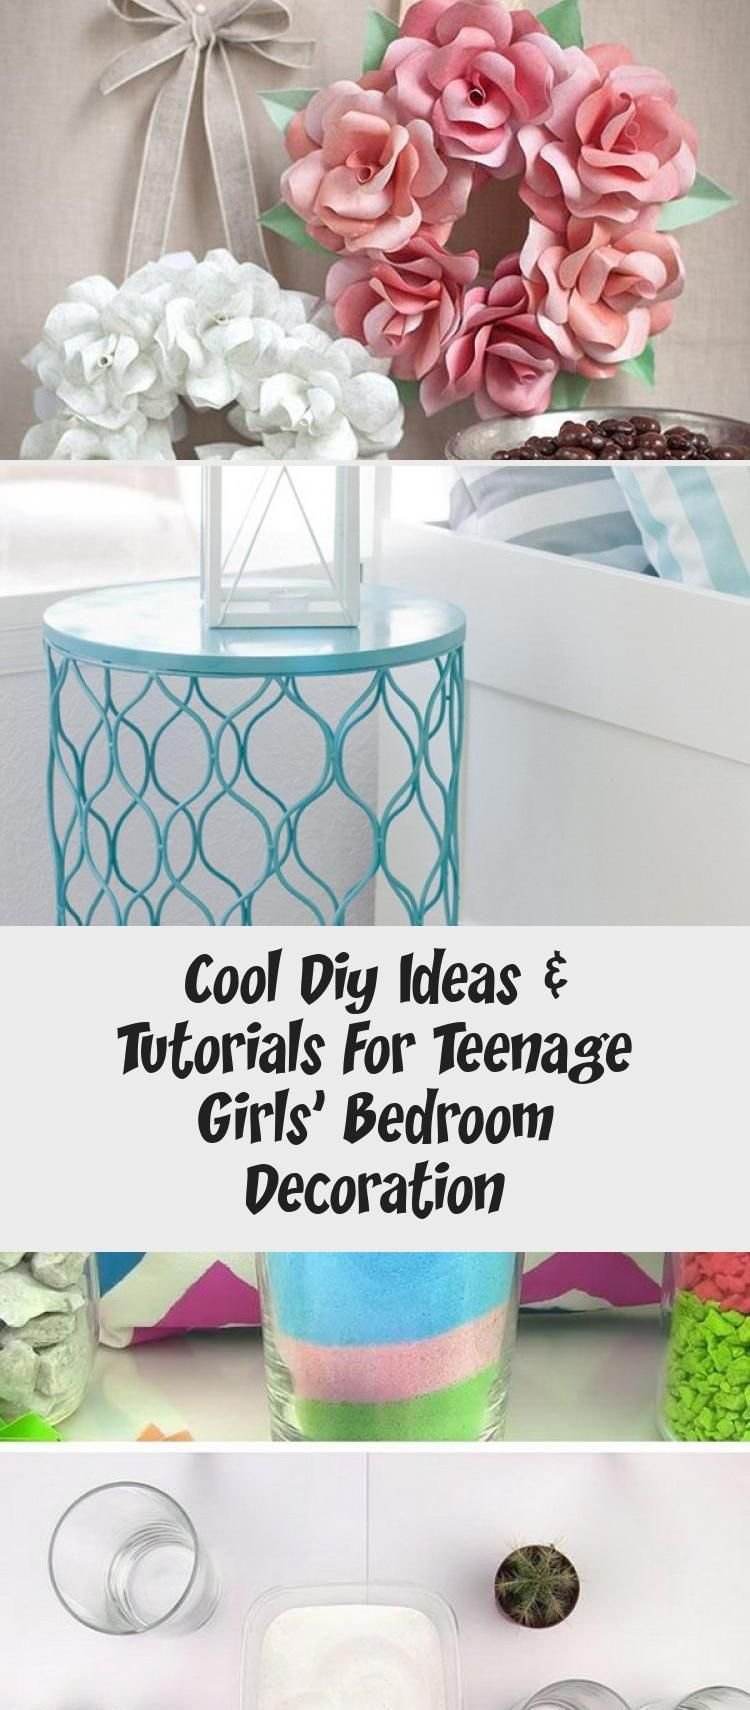 Cool Diy Ideas & Tutorials For Teenage Girls' Bedroom Decoration - #teenagegirlbedrooms